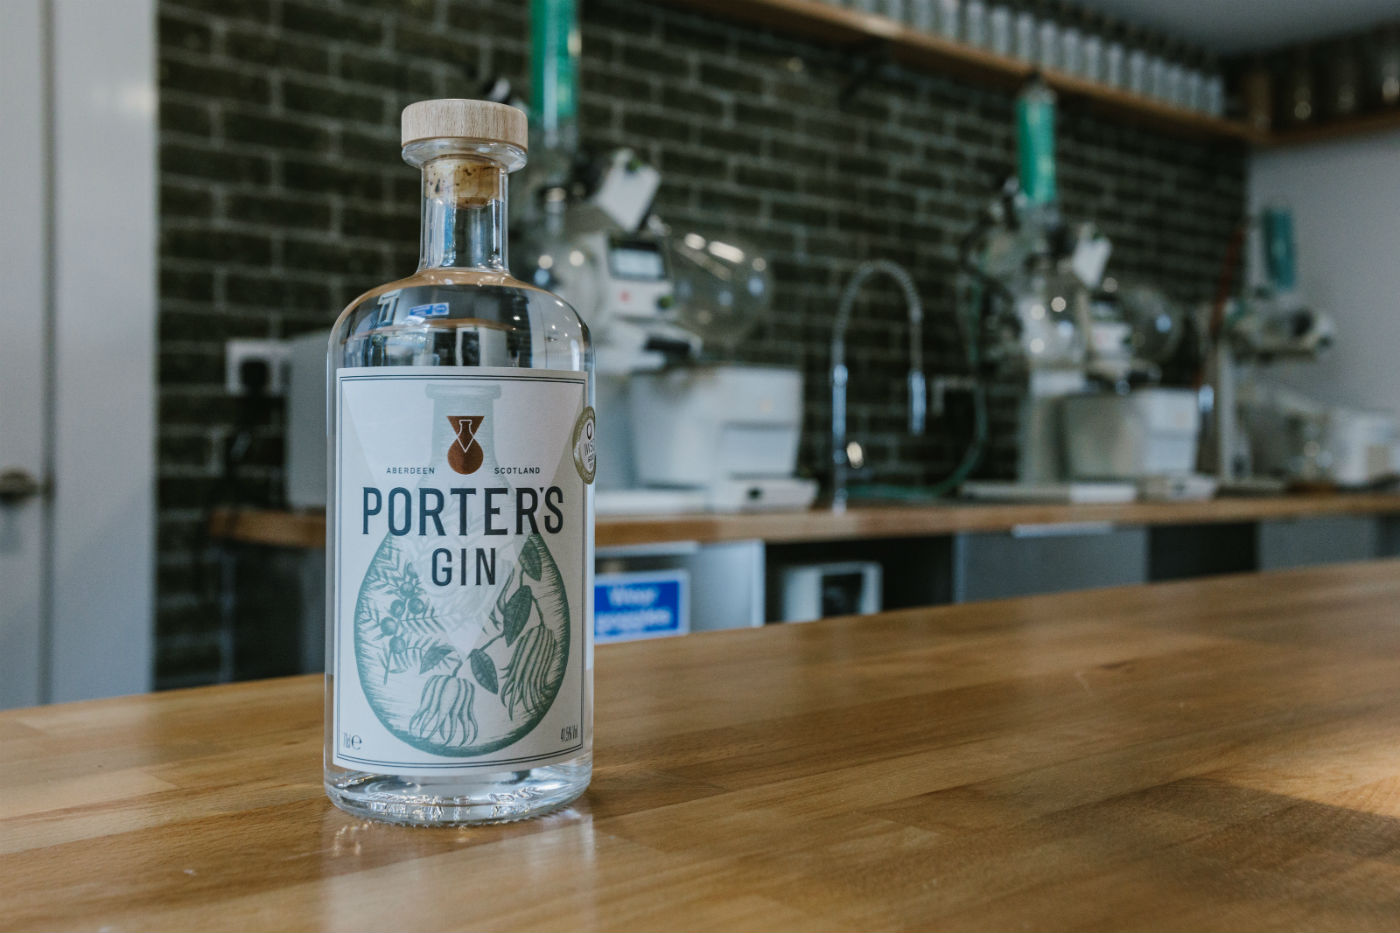 Aberdeen's Porter's Gin Opens Its Doors To The Public And Releases Much Anticipated 'tropical Old Tom' photo